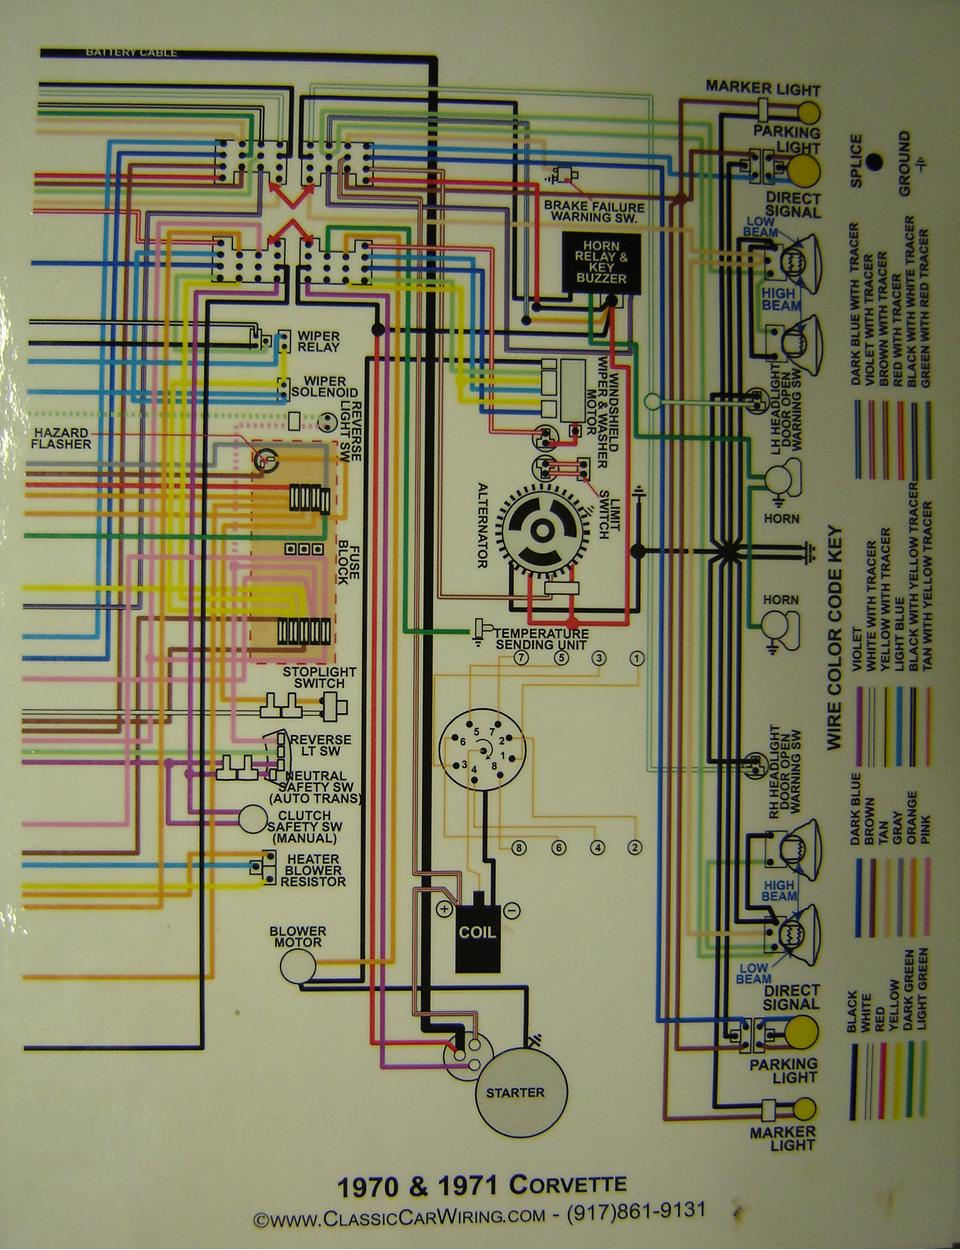 chevy diagrams 1970 71 corvette color wiring diagram 2 drawing b